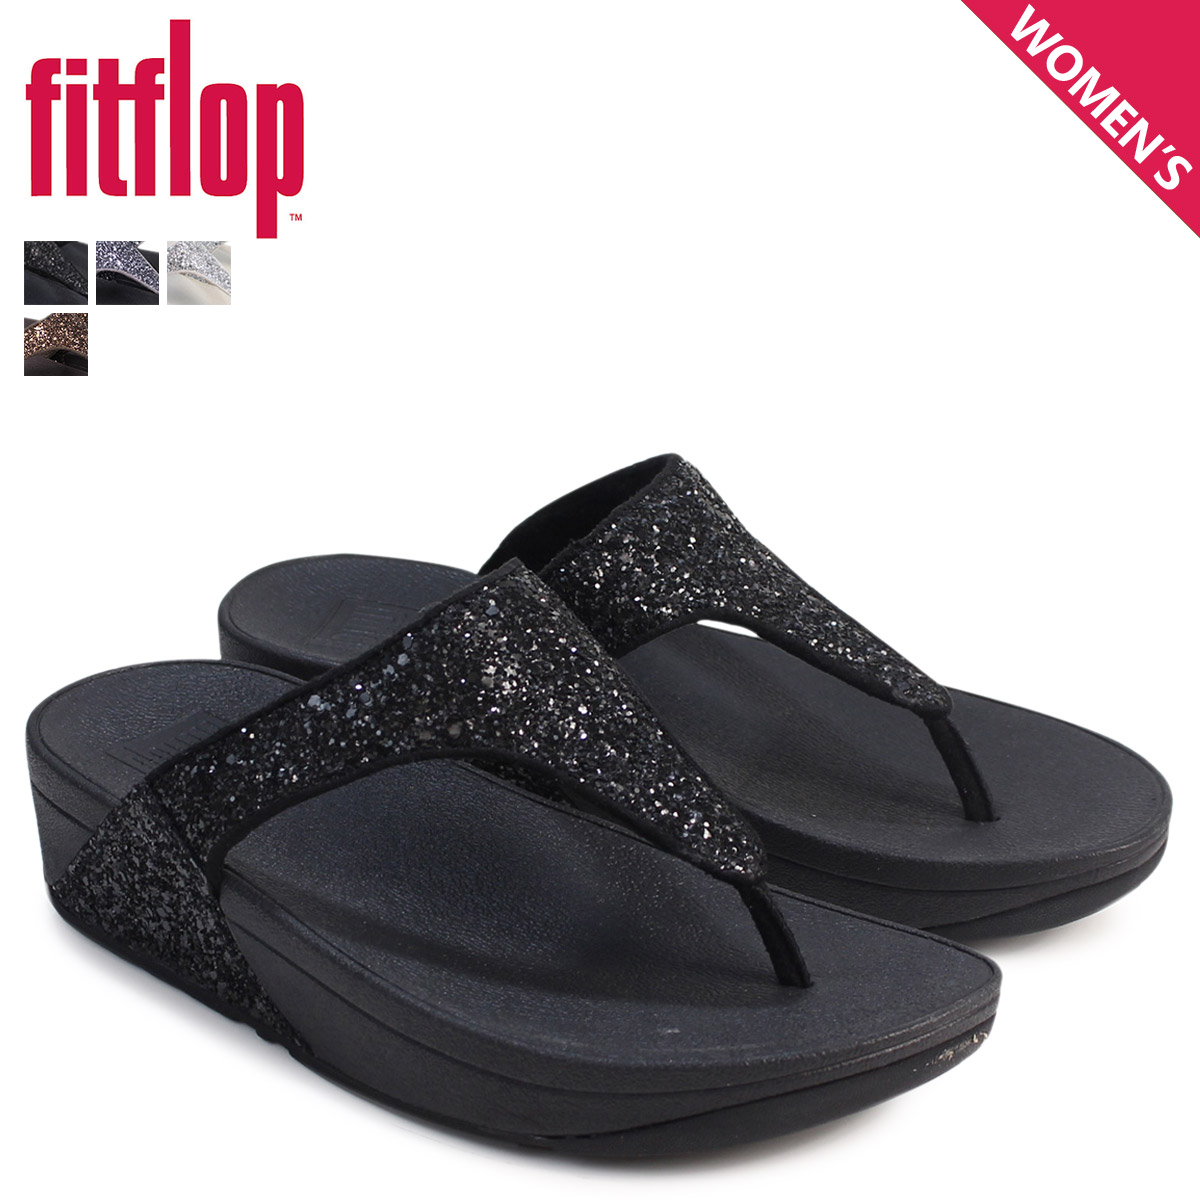 ff8ff5fc28a Fitting FLOP sandals FitFlop glitter GLITTERBALL TOE POST H25 Lady s  4 4  Shinnyu load   174